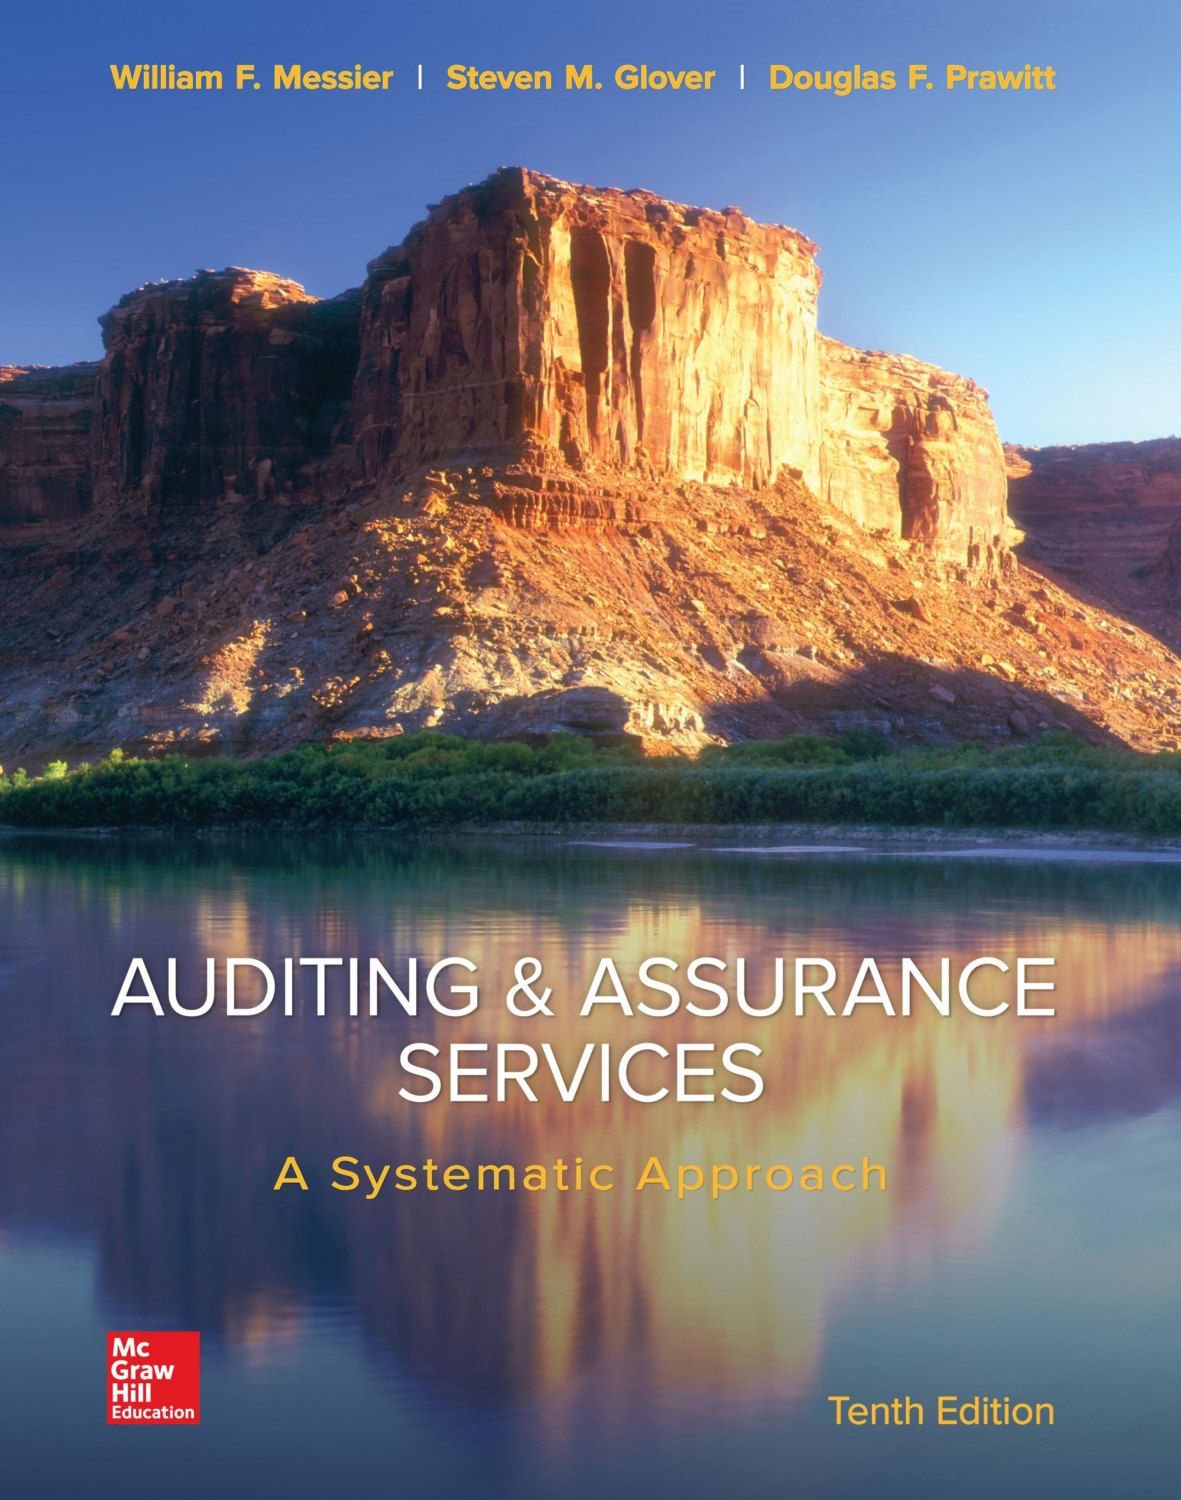 And assurance services a systematic approach 10th edition ebook and assurance services a systematic approach 10th edition ebook textbook ebook digital book e texbook accounting ebook fandeluxe Image collections